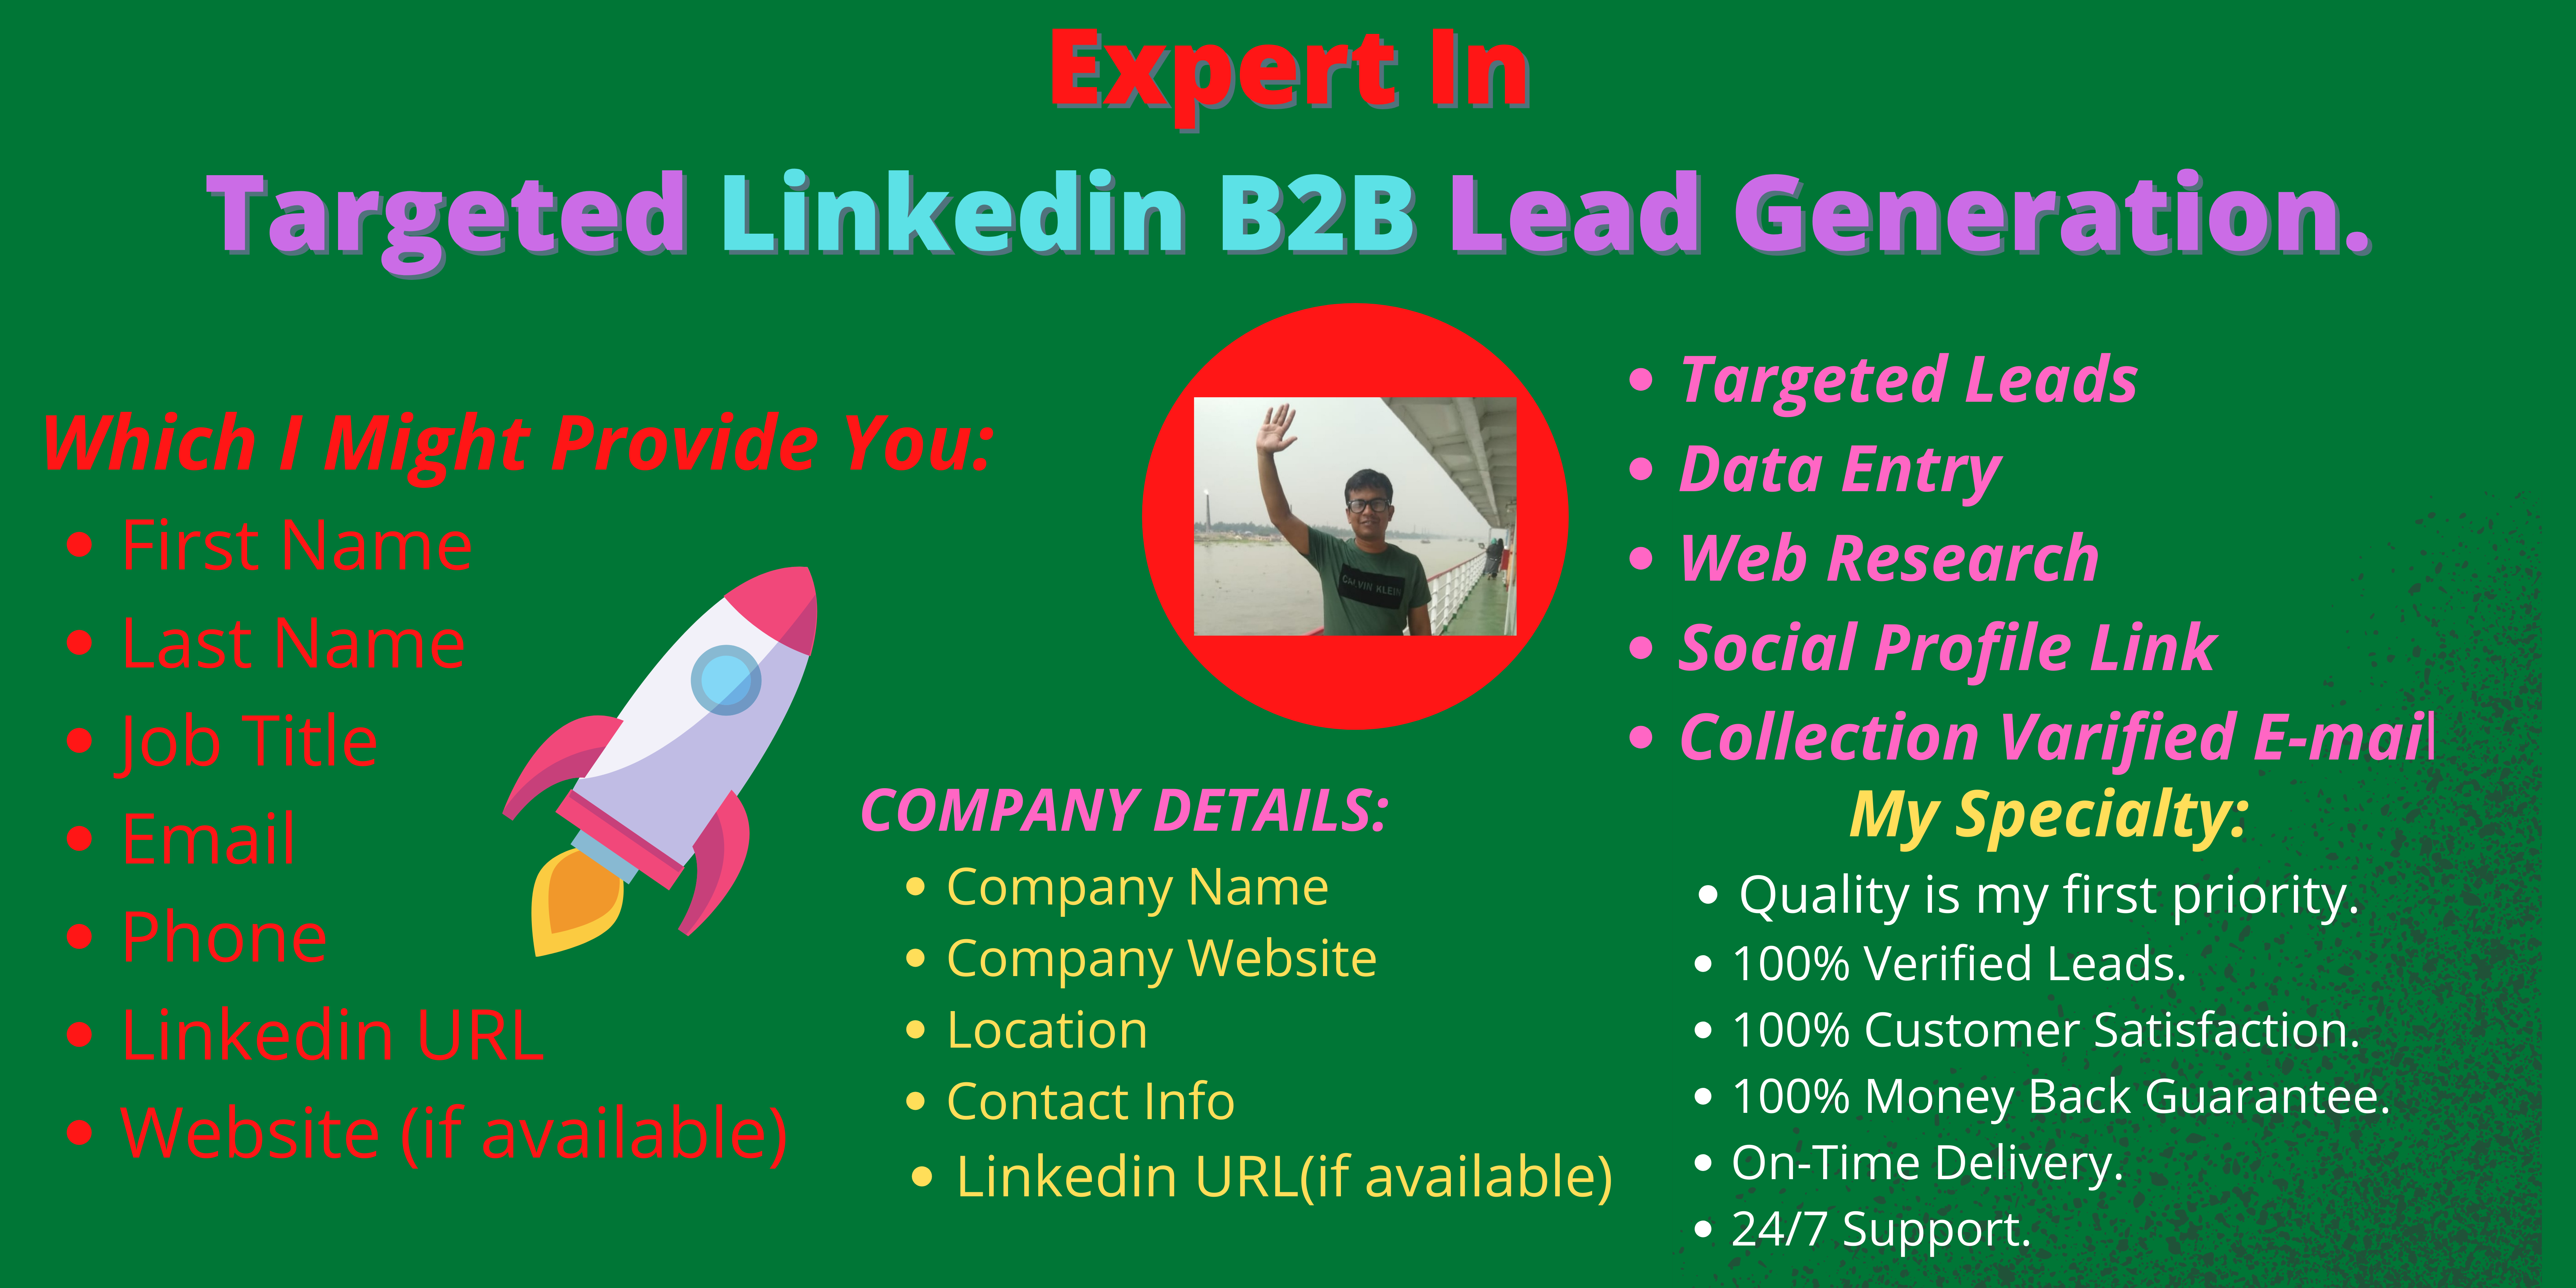 Furnish Targeted 20 B2B LinkedIn Lead Generation and Web Research